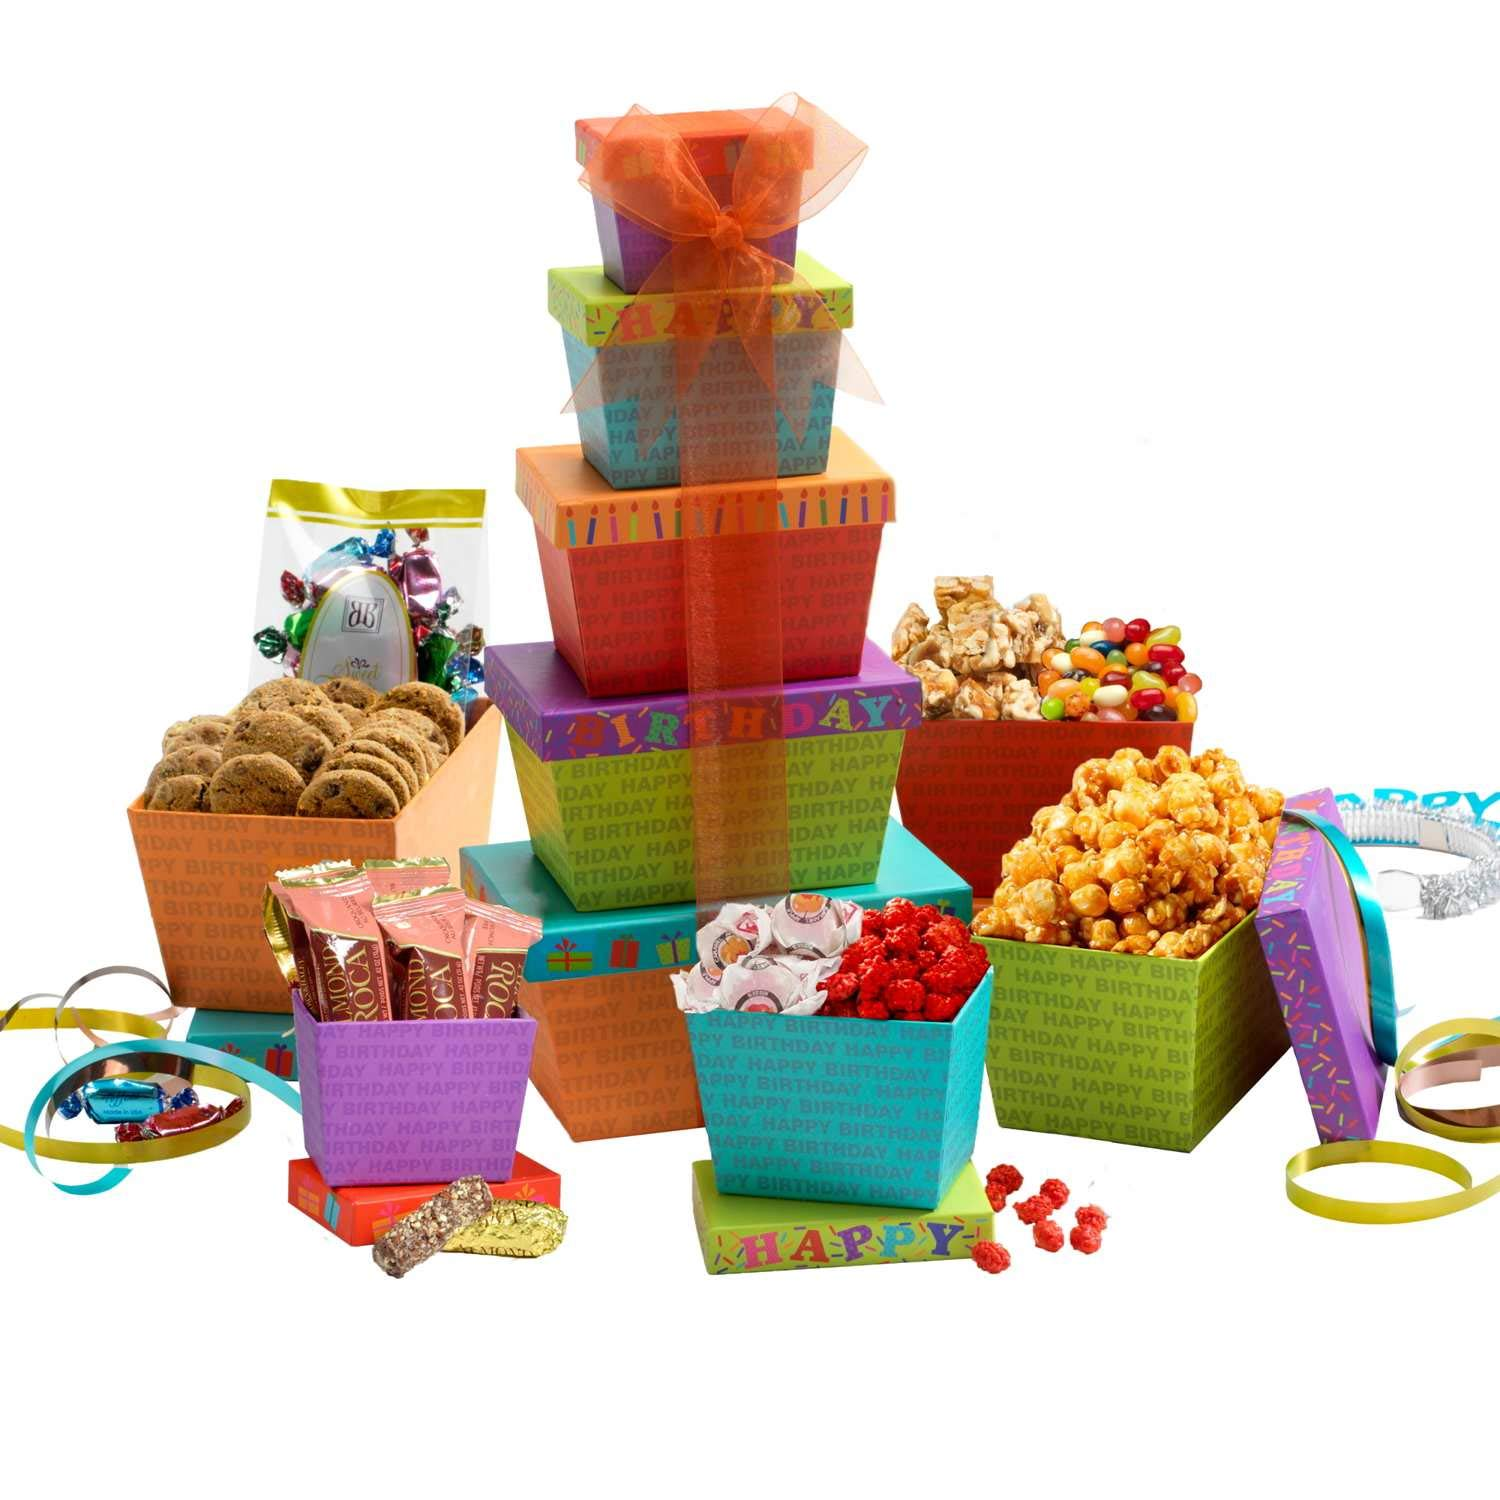 Broadway Basketeers Gift Tower, Happy Birthday Celebration by Broadway Basketeers